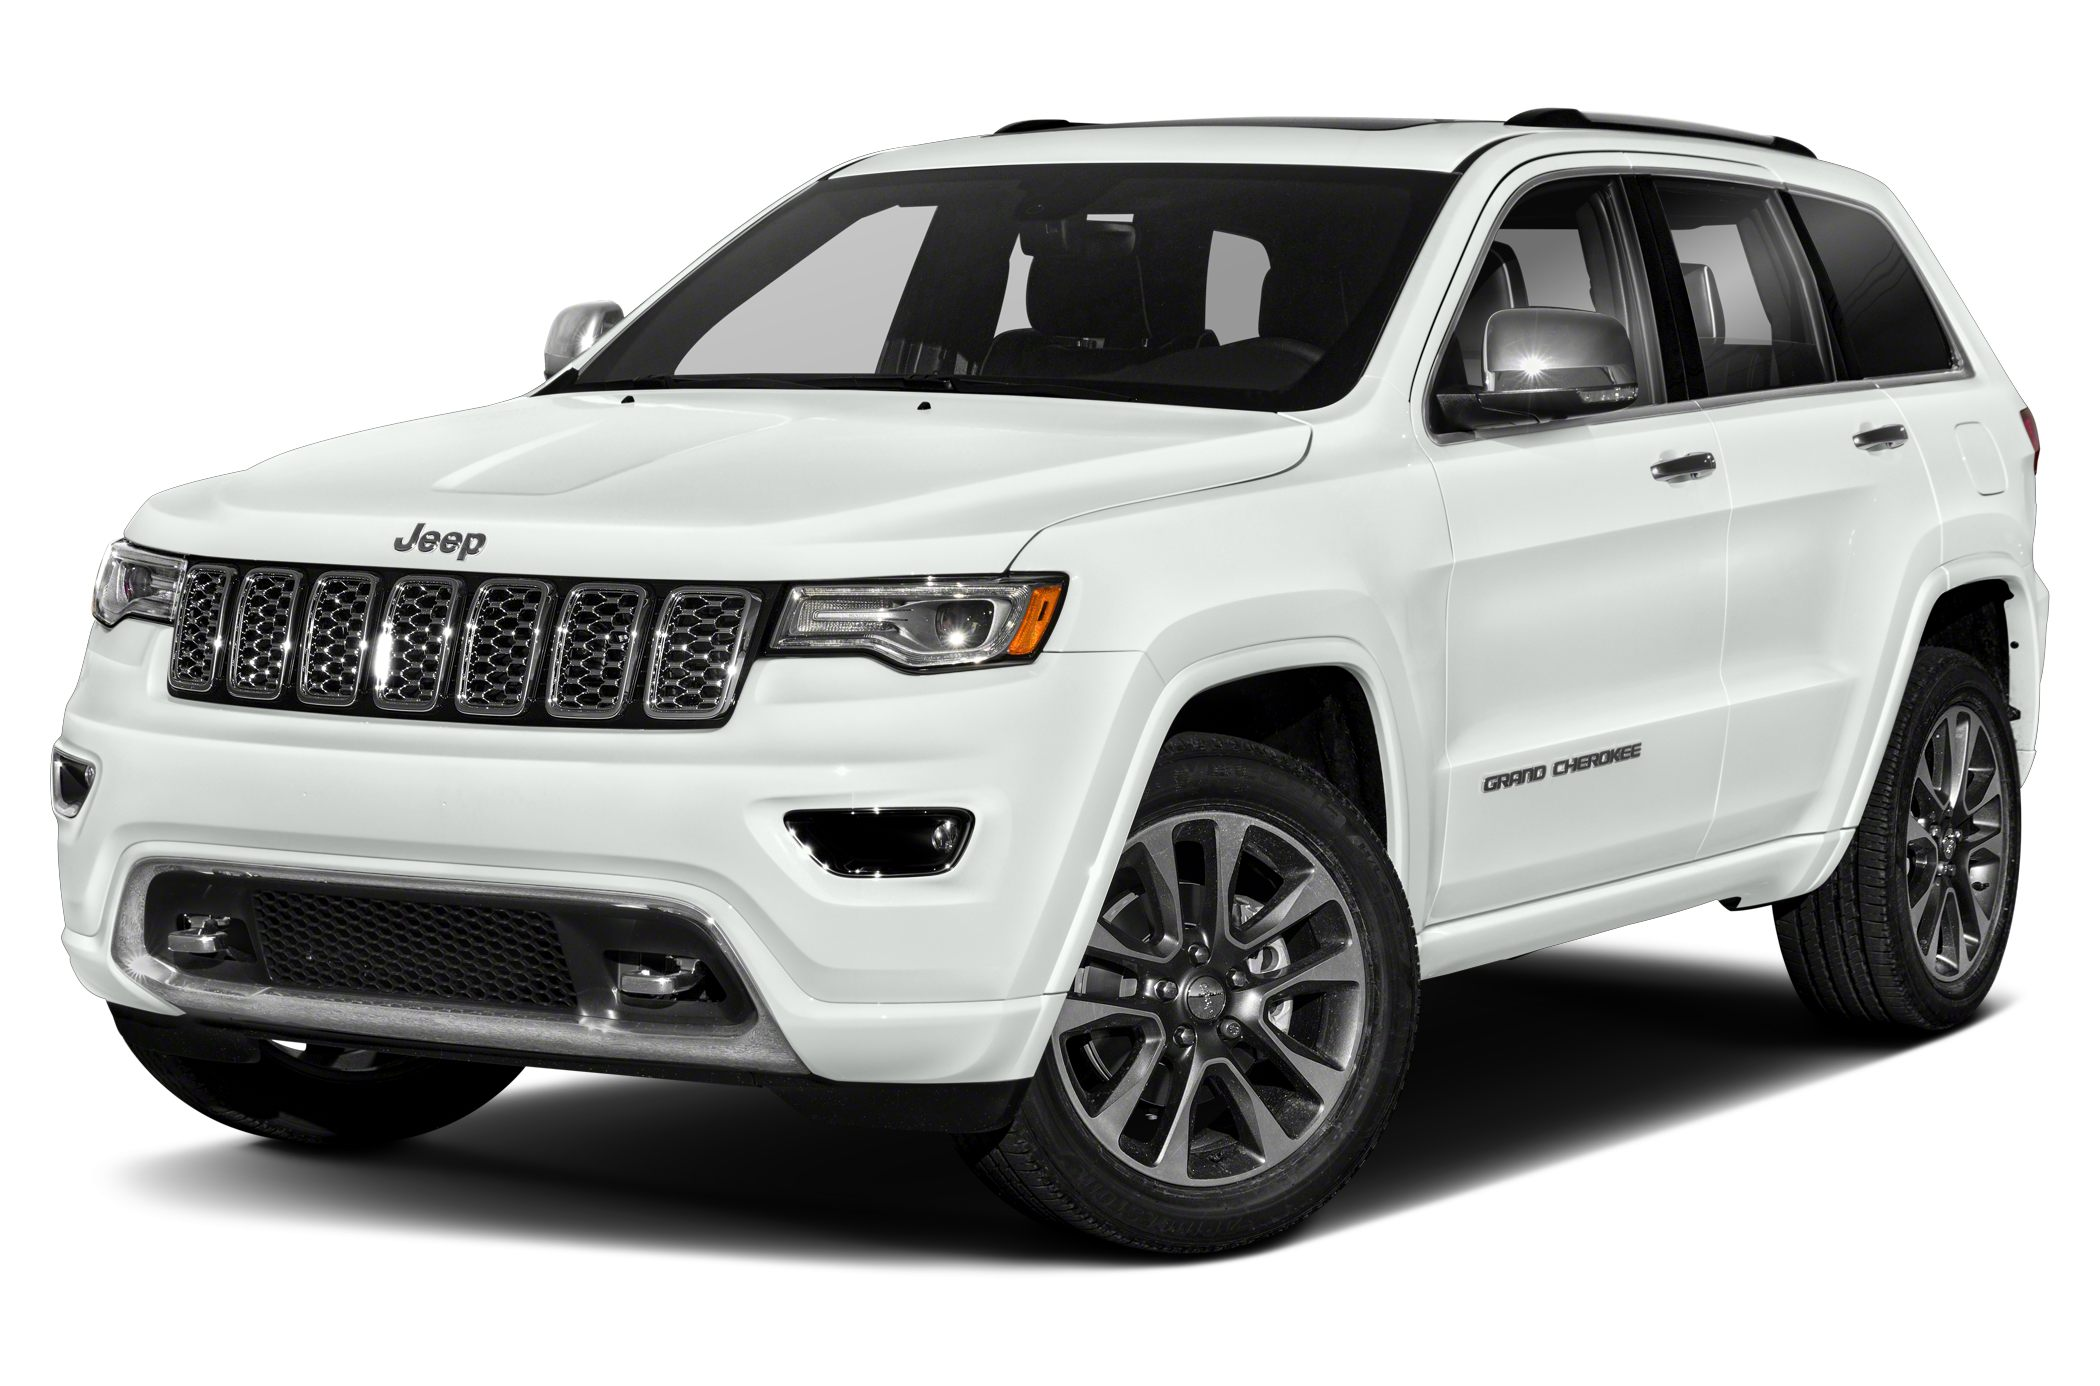 2017 Jeep Grand Cherokee Overland 4dr 4x4 Specs And Prices Trailer Hitch Wiring